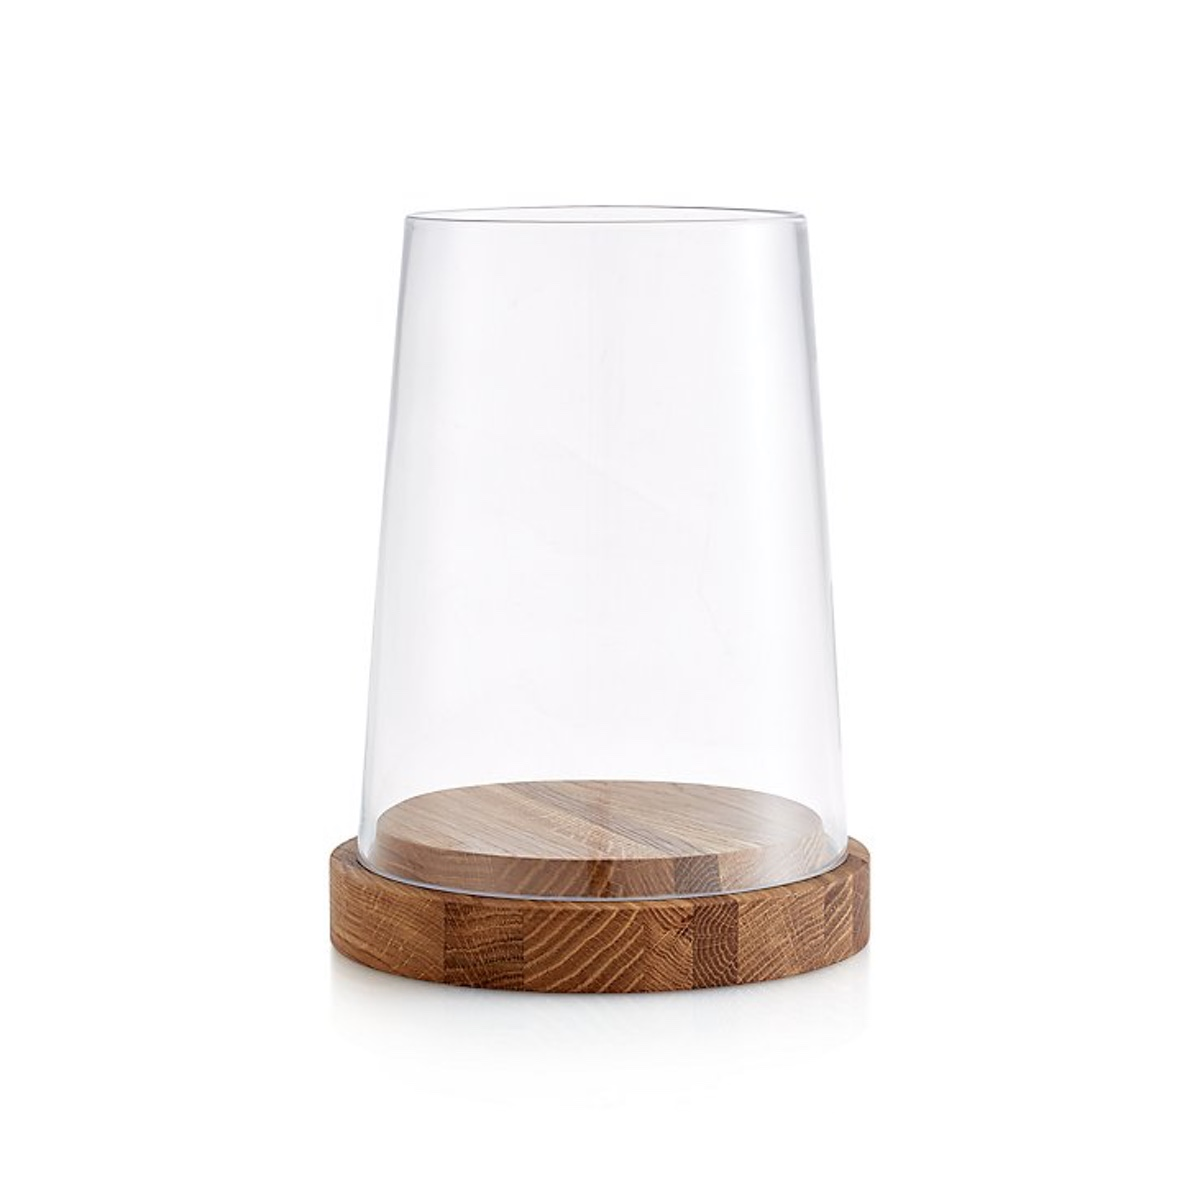 Crate & Barrel Oak Candle Holders